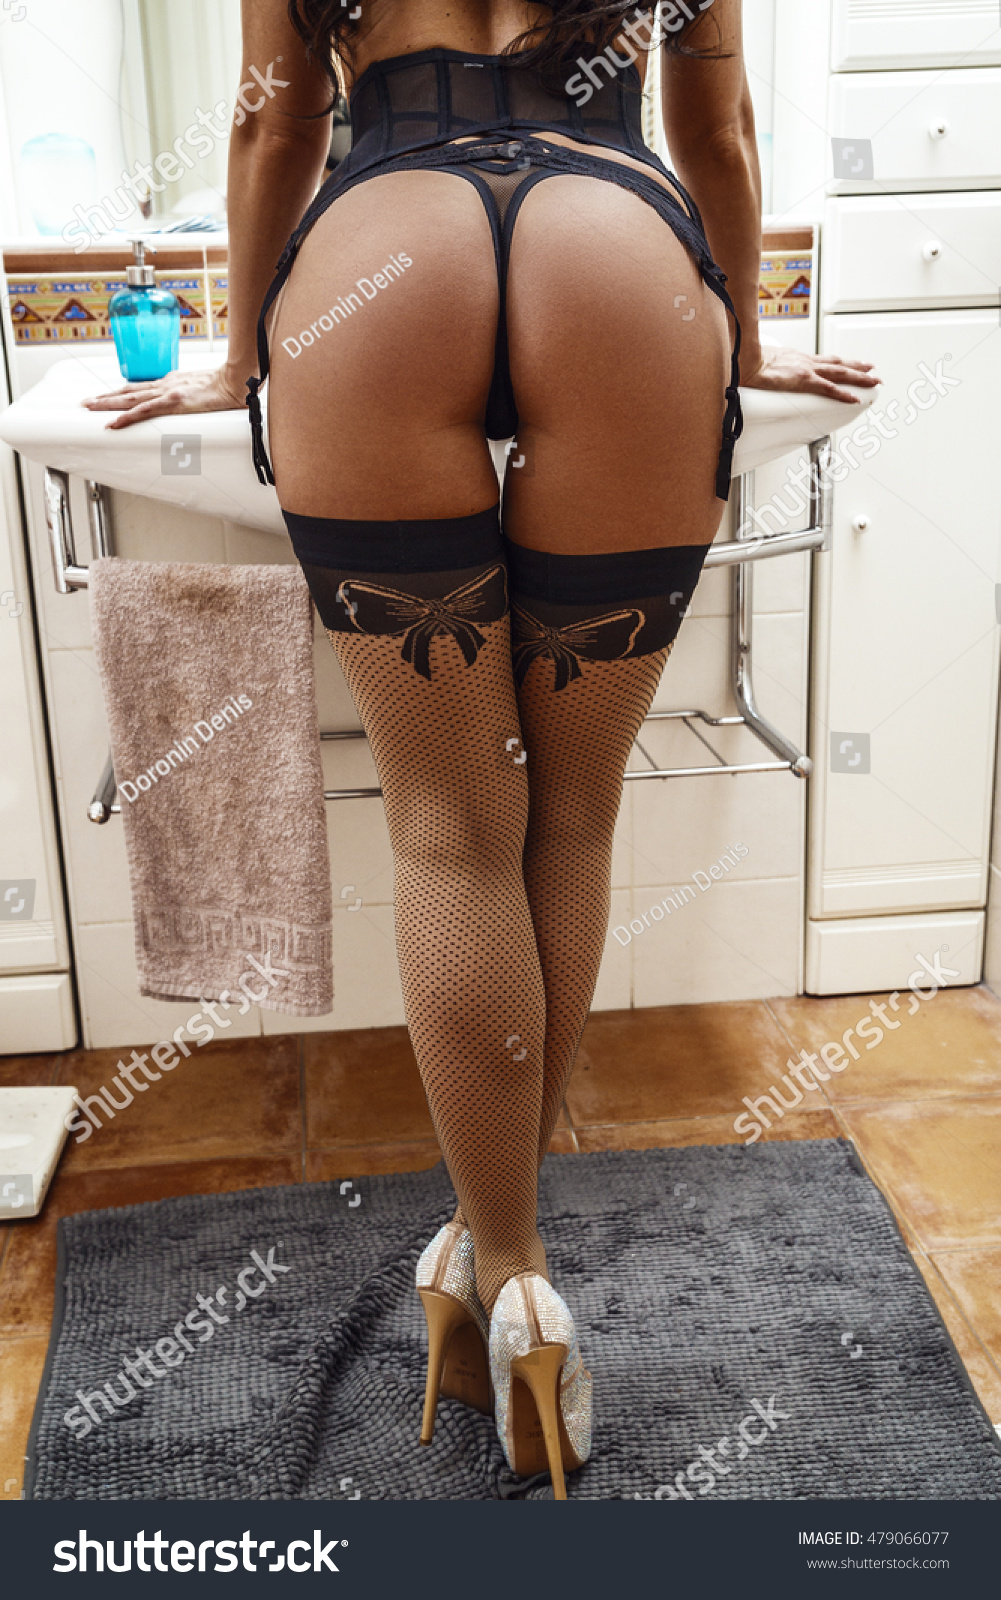 Hot ass stockings